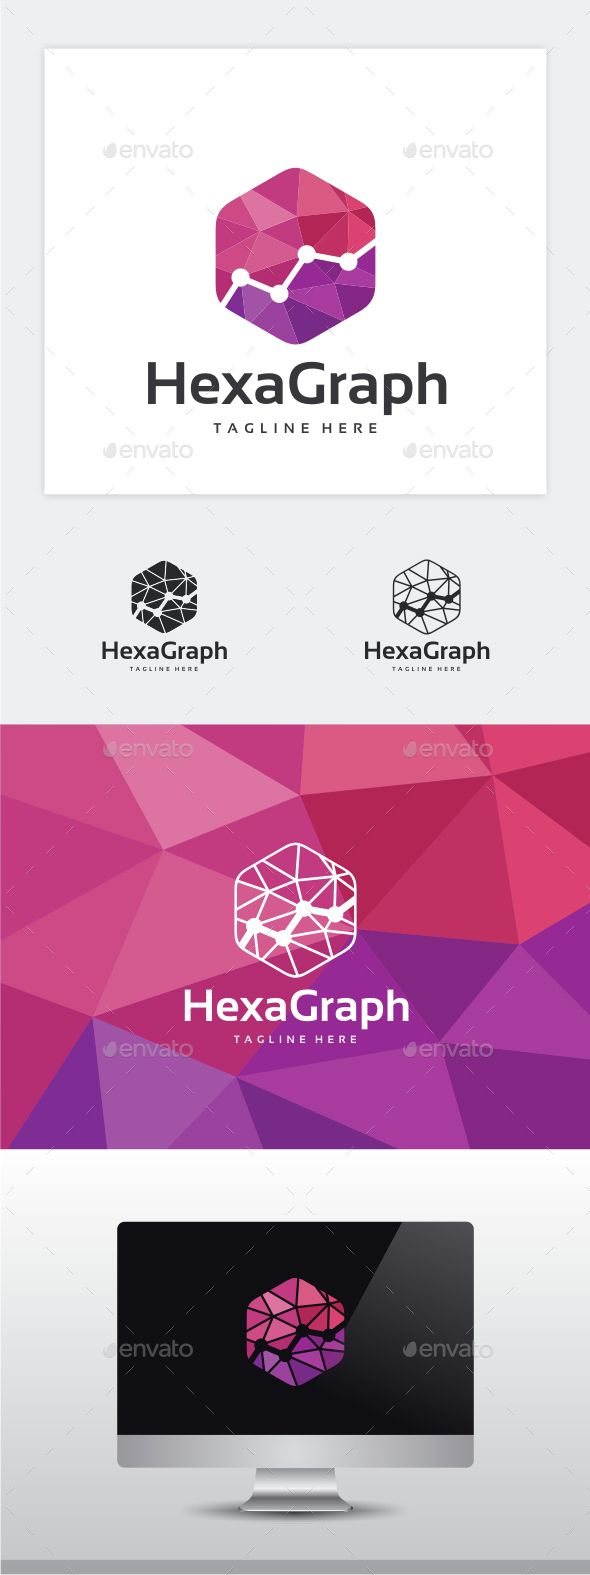 Hexa Graph Logo Template Vector EPS, AI. Download here: http://graphicriver.net/item/hexa-graph-logo/14546714?ref=ksioks